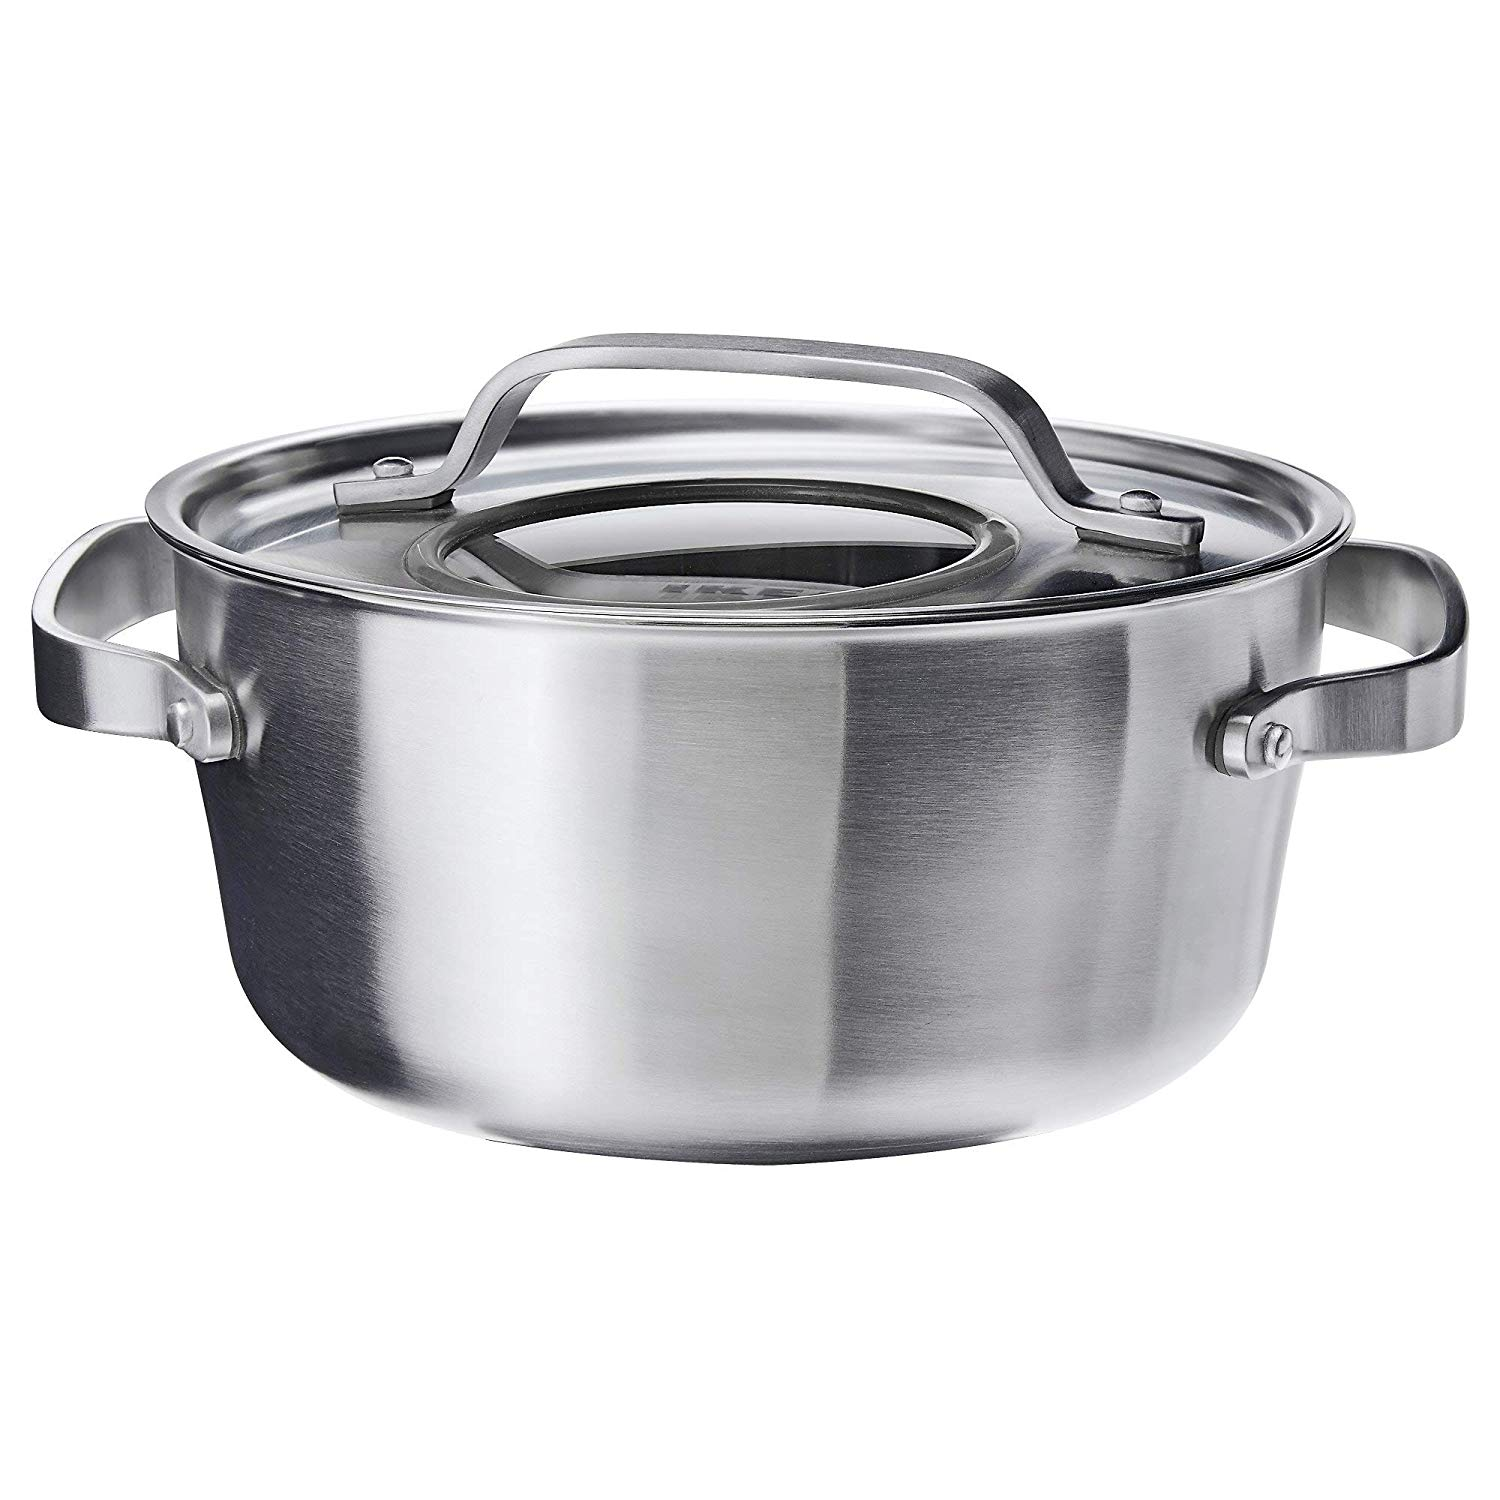 SENSUELL Pot with lid, stainless steel, grey, 4 l